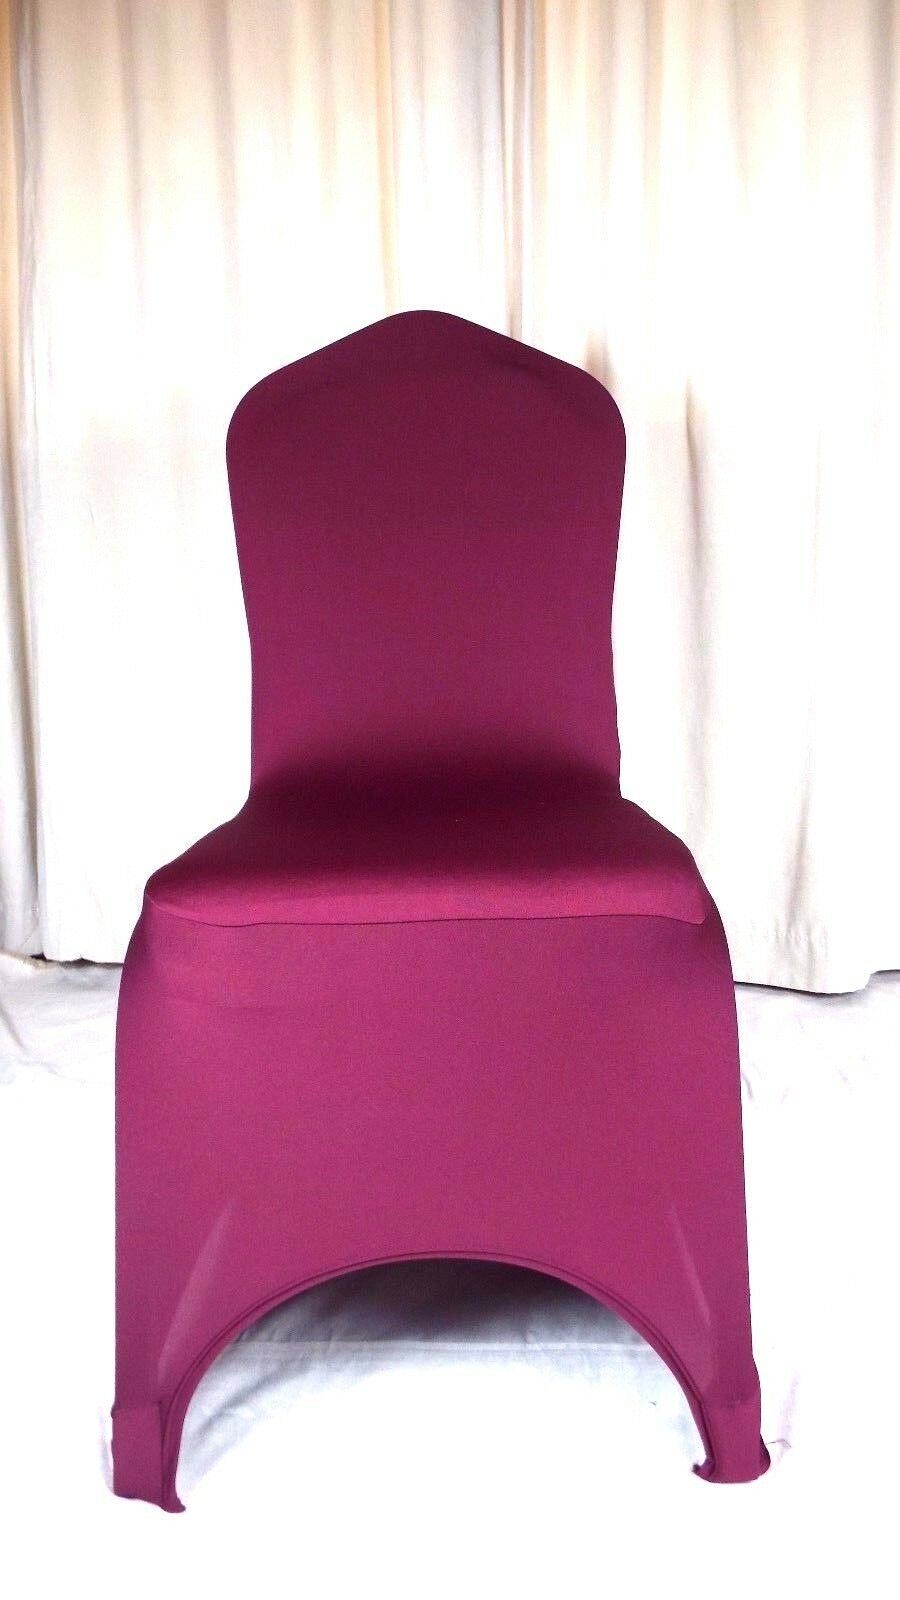 50 Bourgogne Spandex Chair Covers